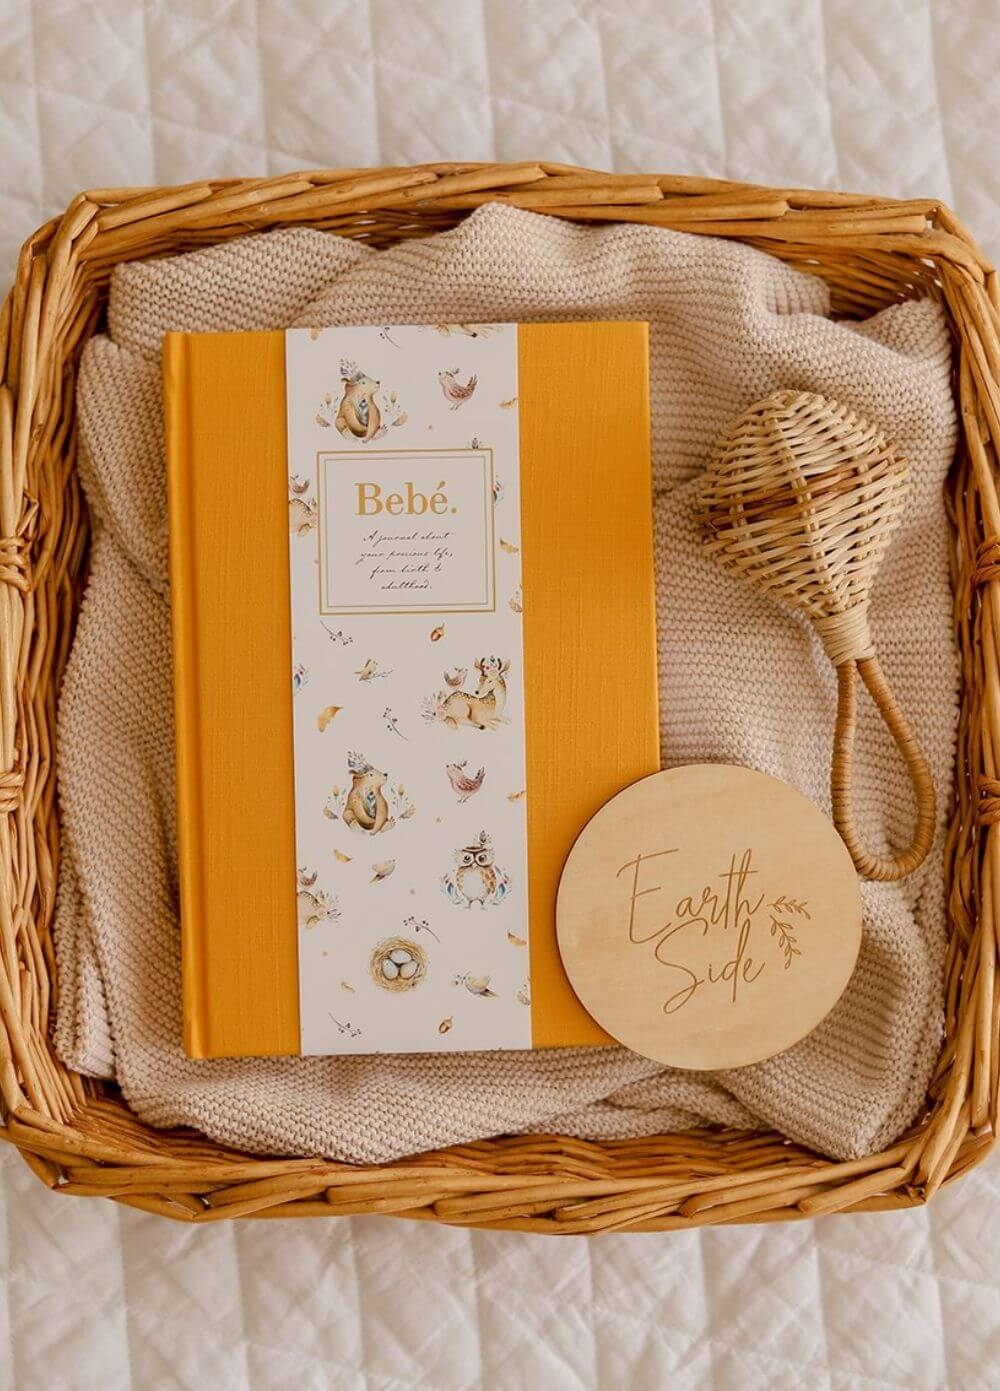 Truly Amor - Bebé Baby Book in Amber | Queen Bee